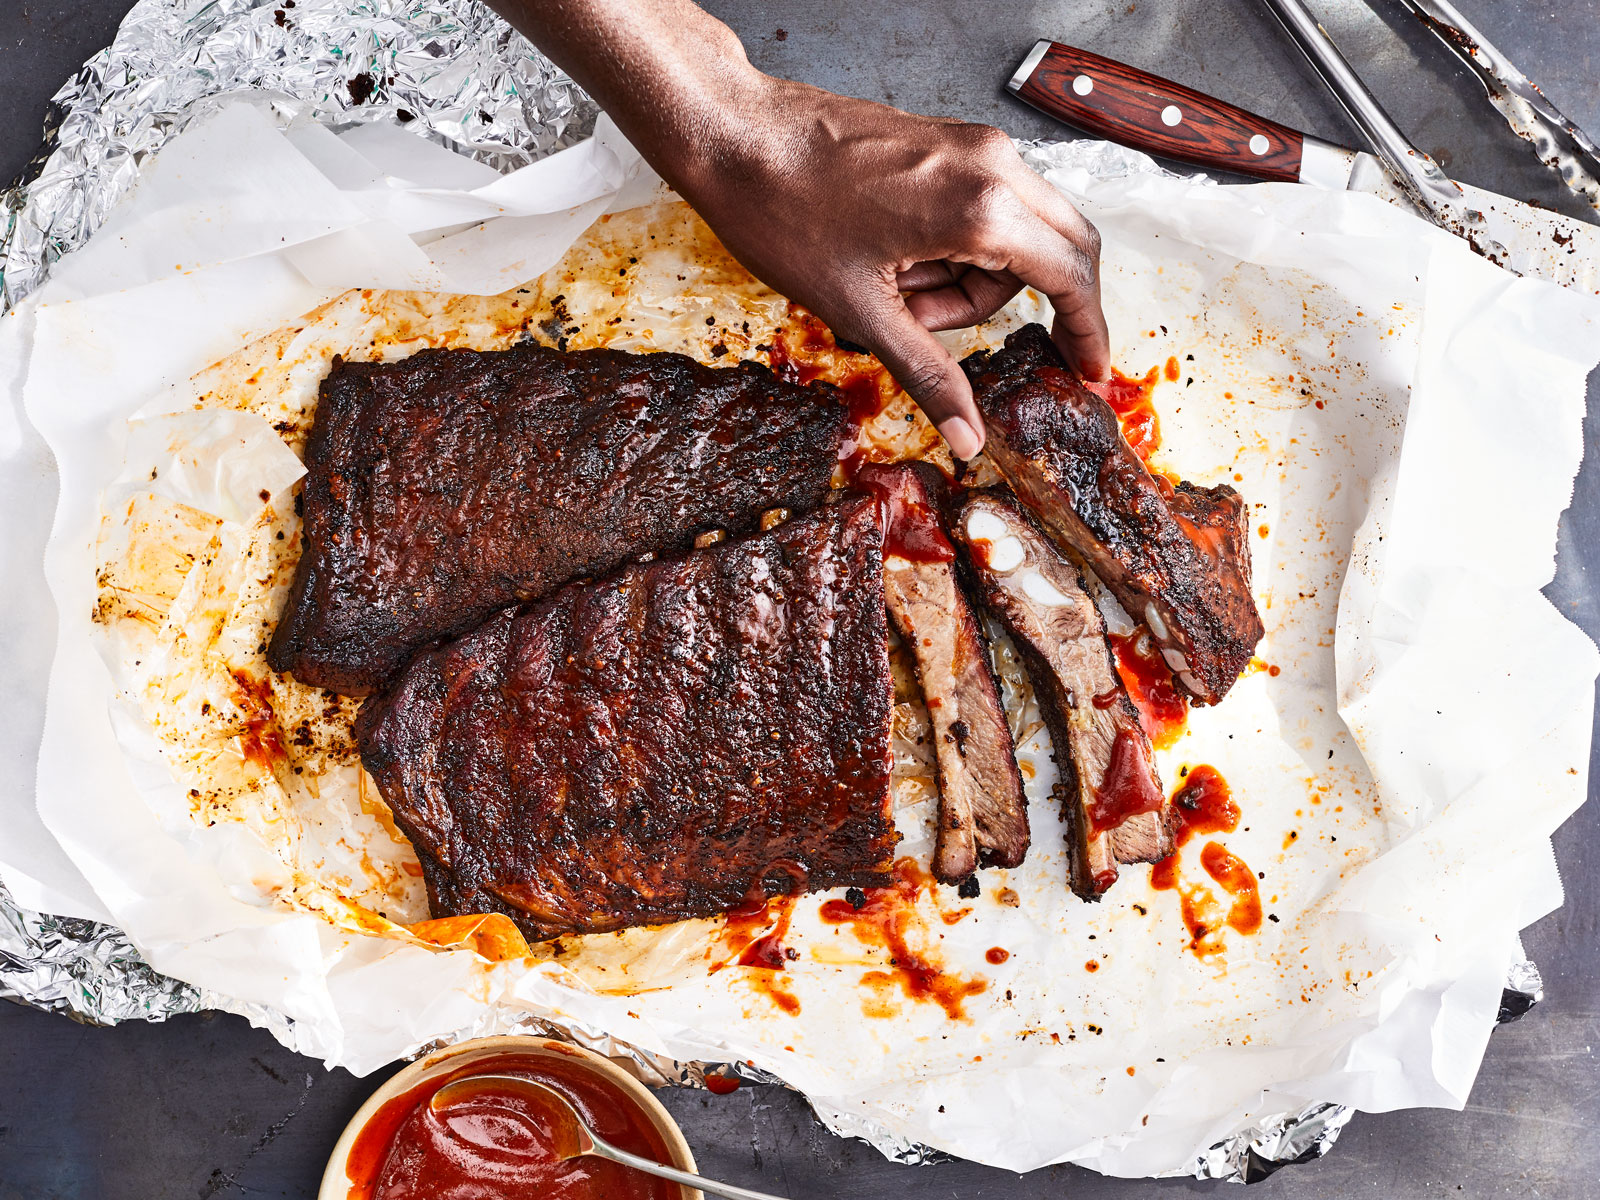 17 Barbecue Recipes to Master